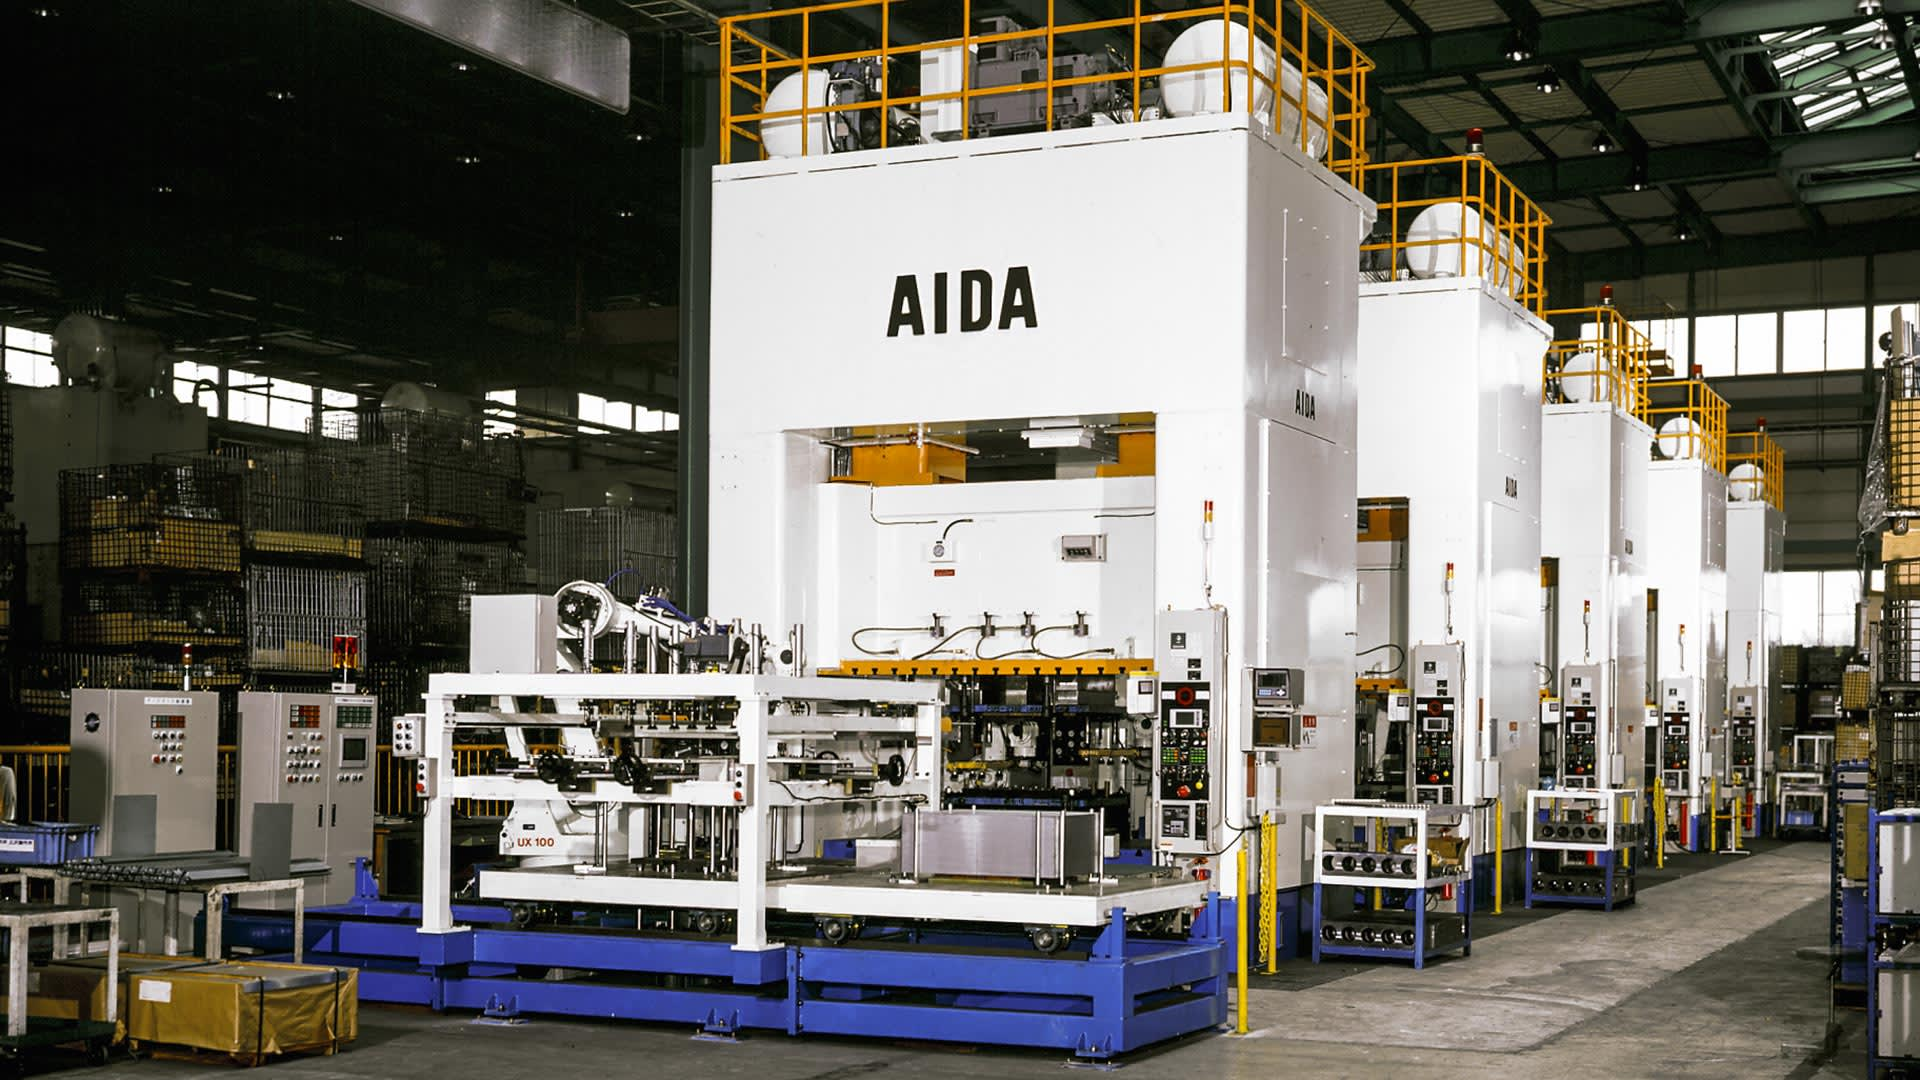 AIDA Mechanical Presses, Tandem and Transfer | SMX